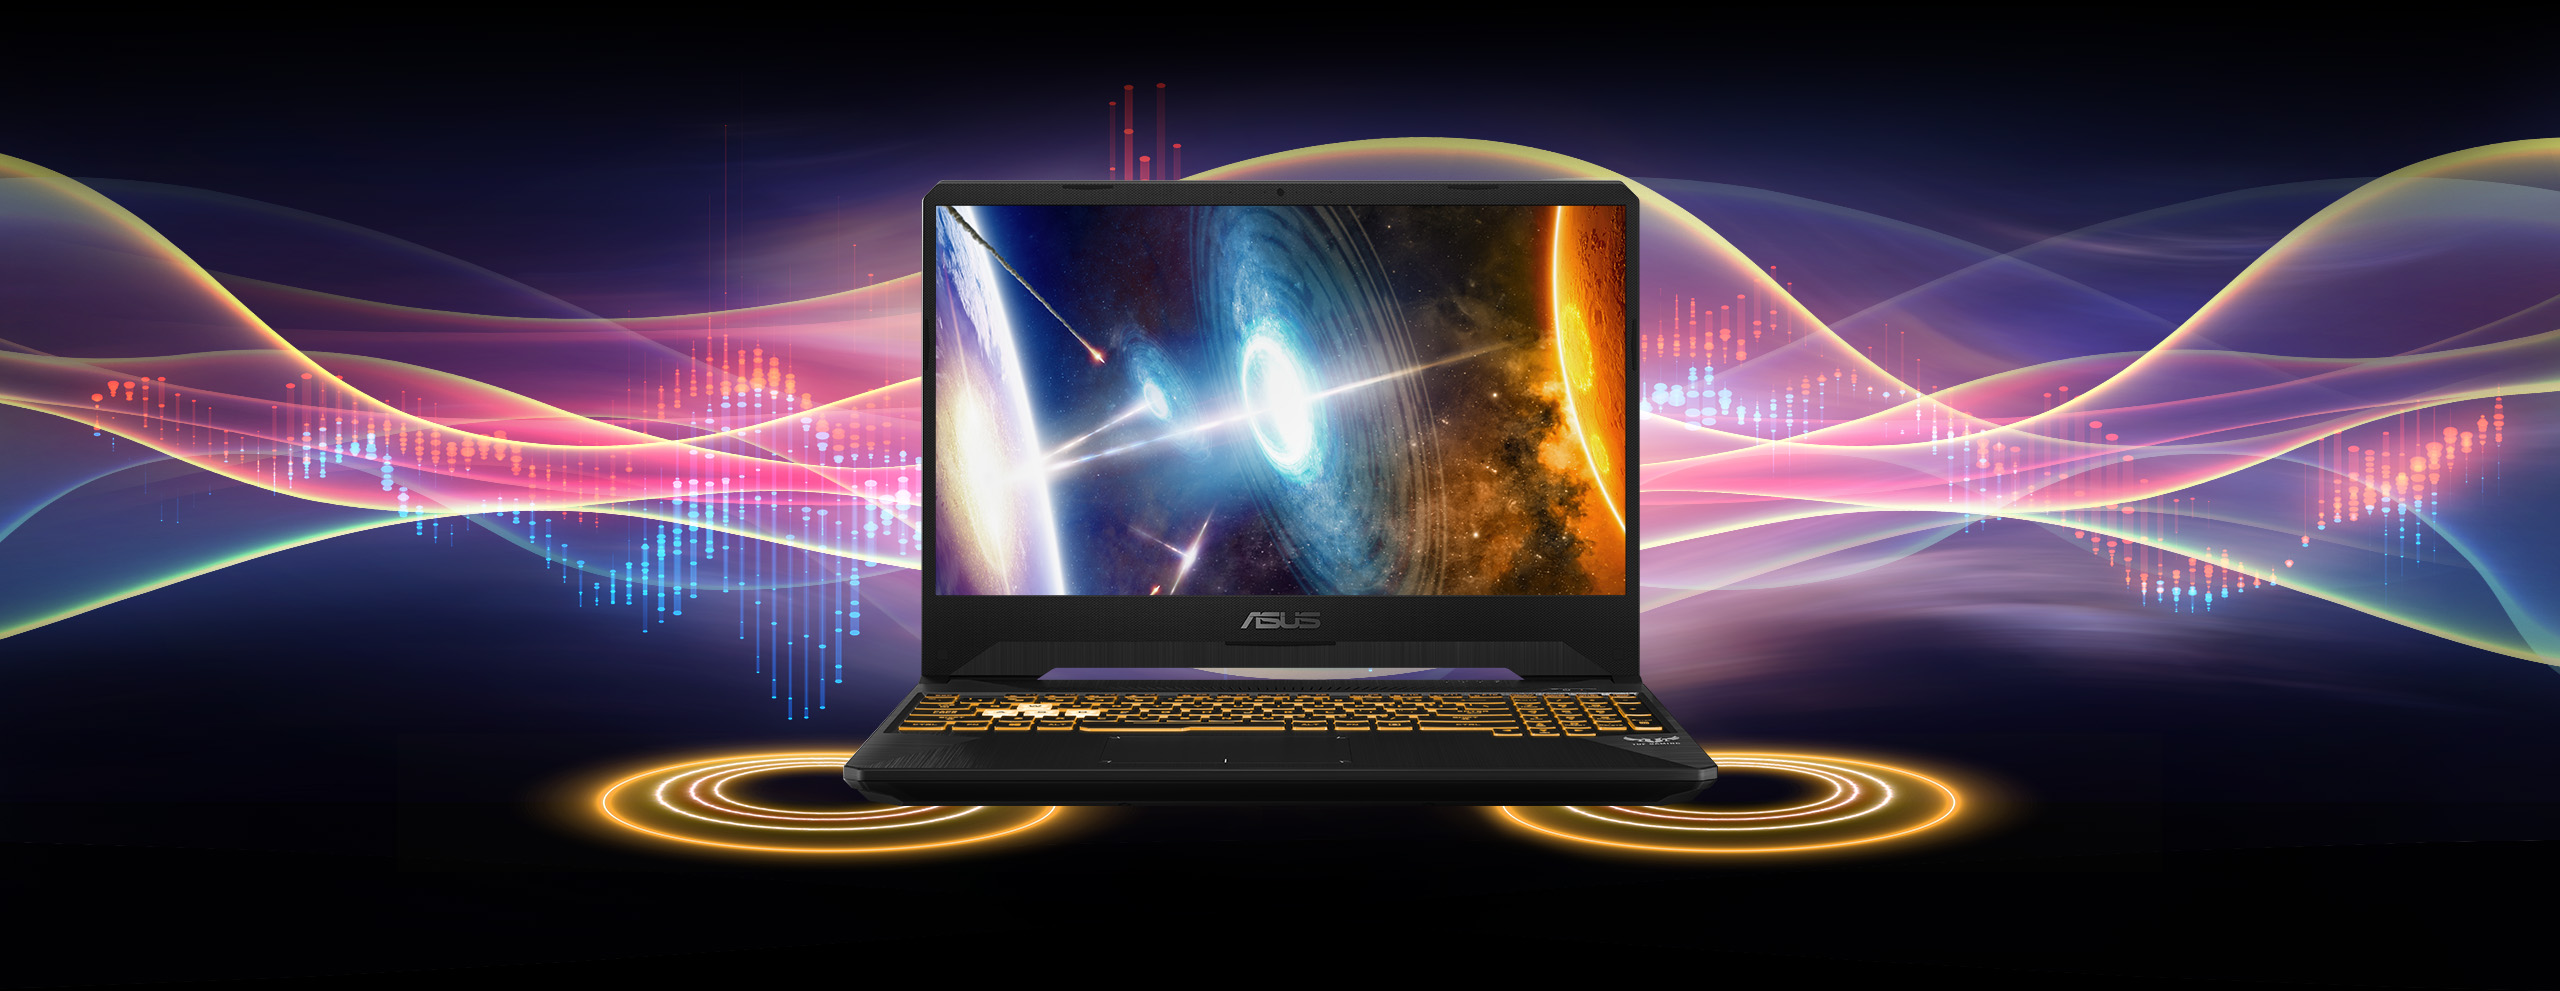 https://dlcdnimgs.asus.com/websites/global/products/ja9kcUU3g5ur9phv/V2/img/desktop/08.jpg